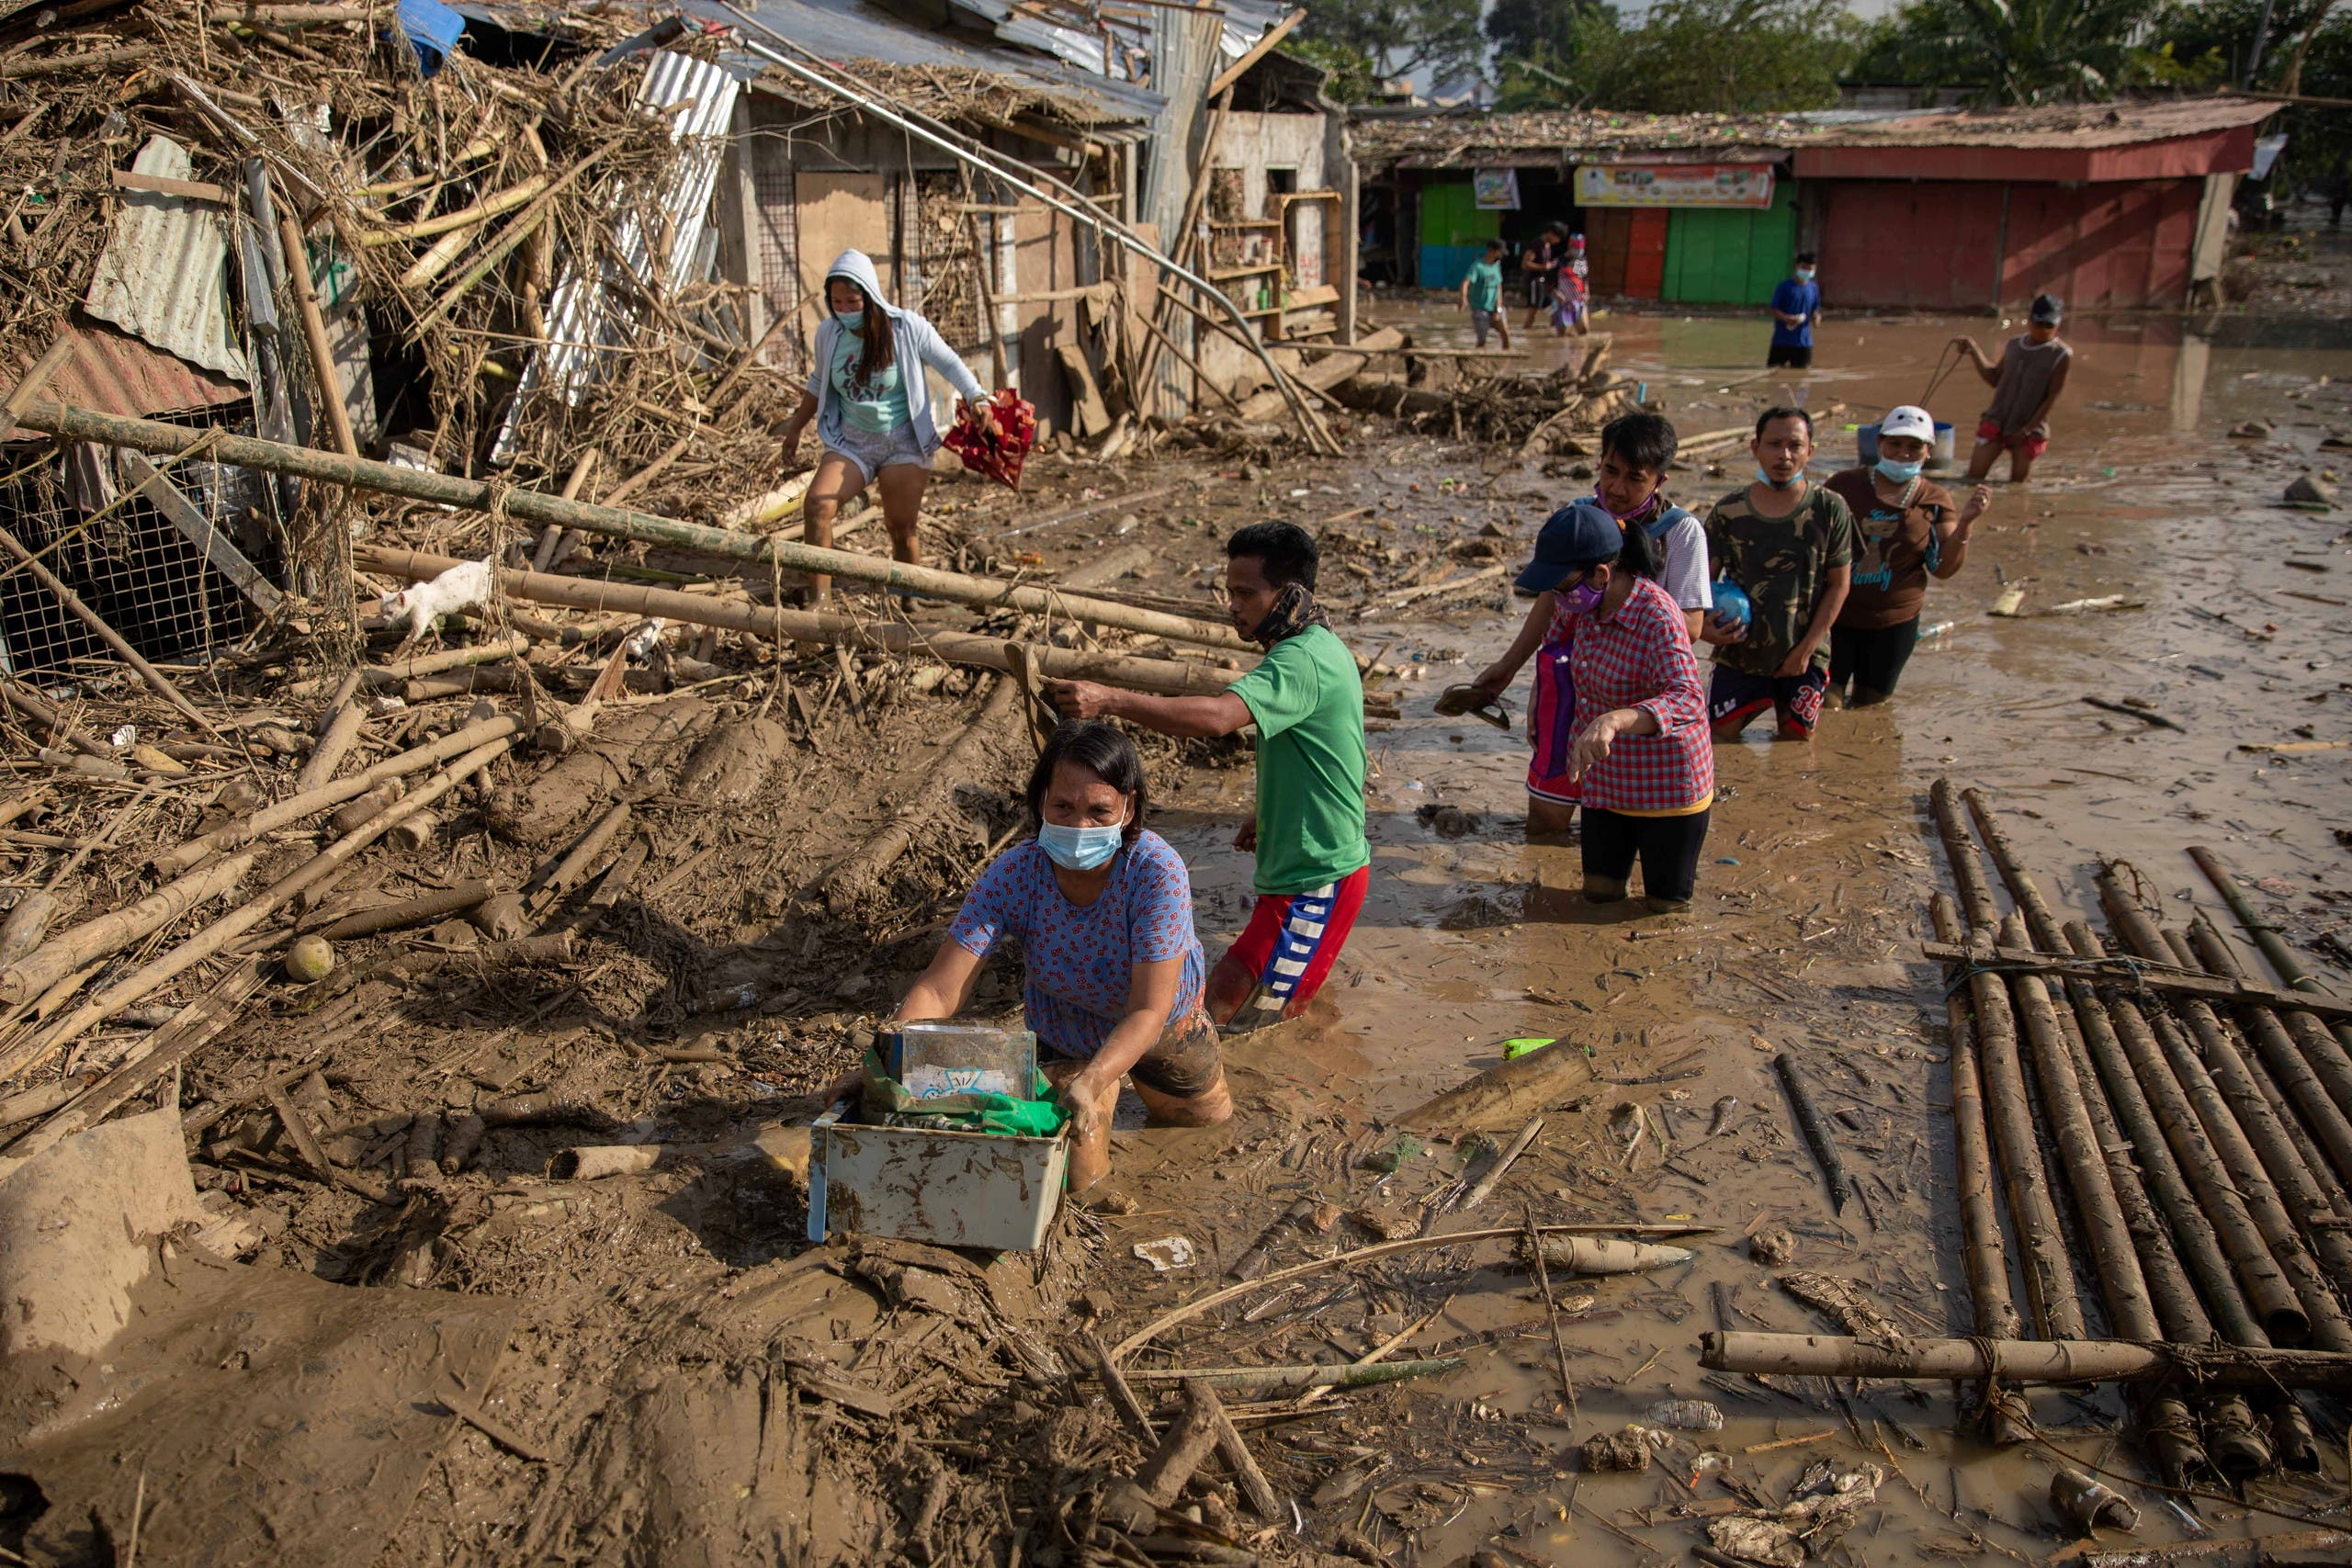 Residents retrieve belongings from their submerged village following floods caused by Typhoon Vamco, in Rodriguez, Rizal province, Philippines. (Reuters)